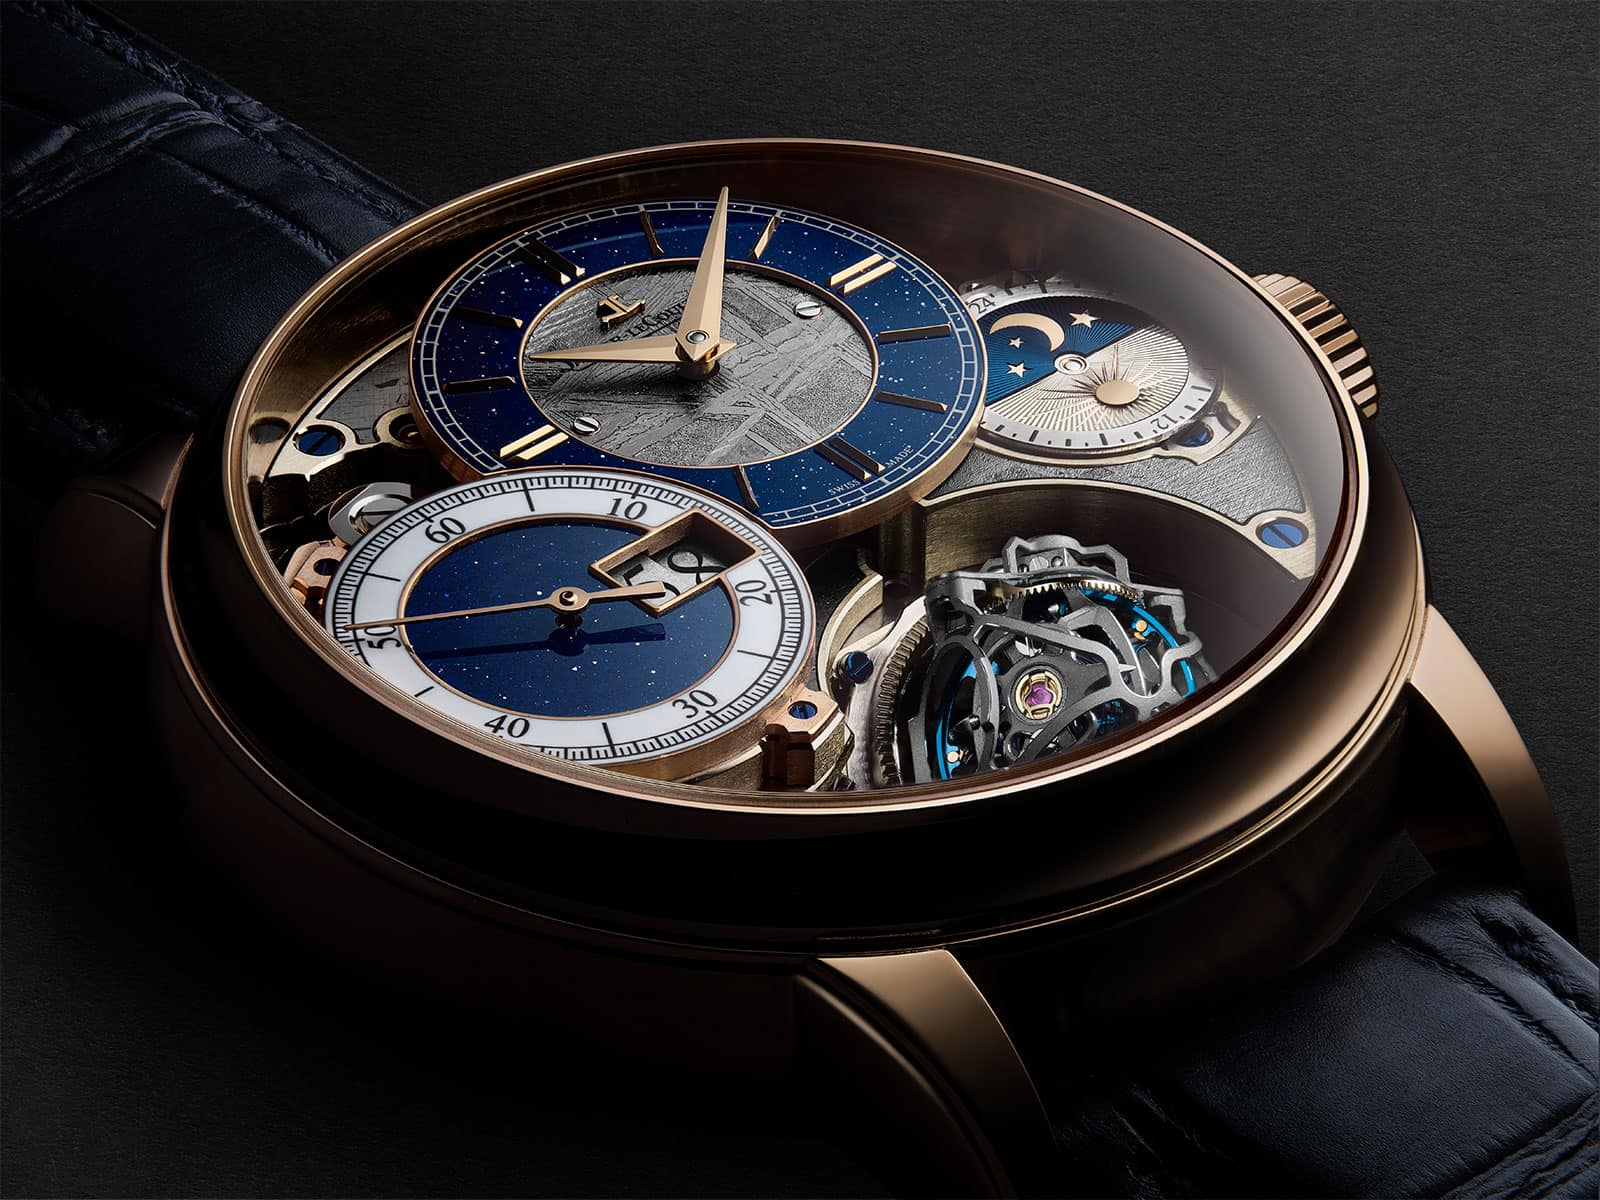 Jaeger-LeCoultre's Gyrotourbillon 3 Meteorite Will Charm You in Seconds